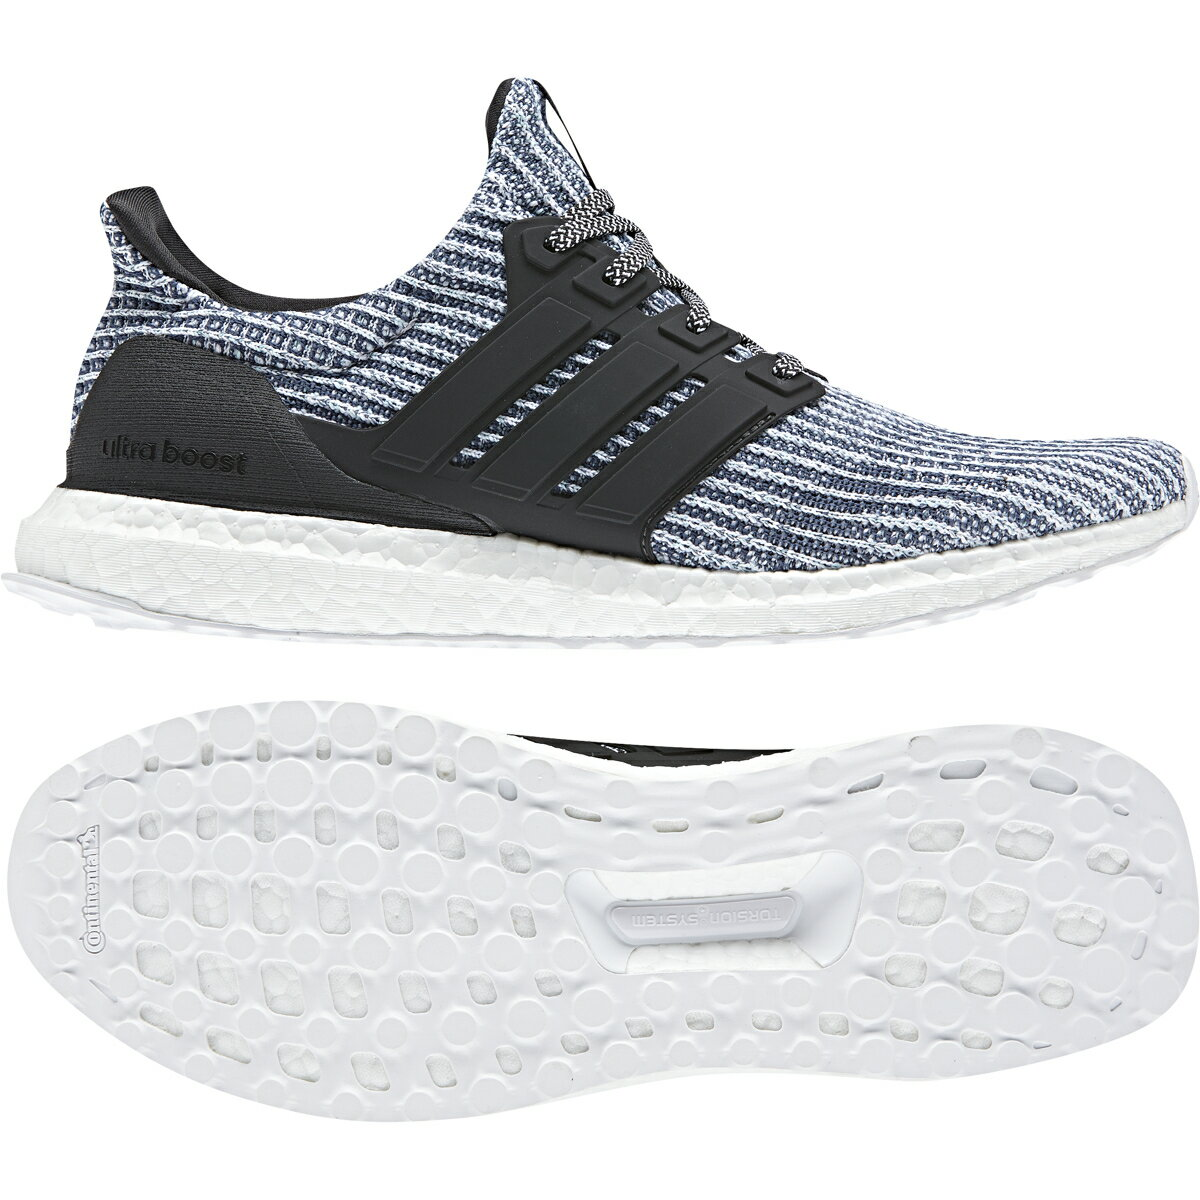 c0b6b65519d RU Products  adidas UltraBOOST Parley 4.0 Shoe - Men s Running SKU ...